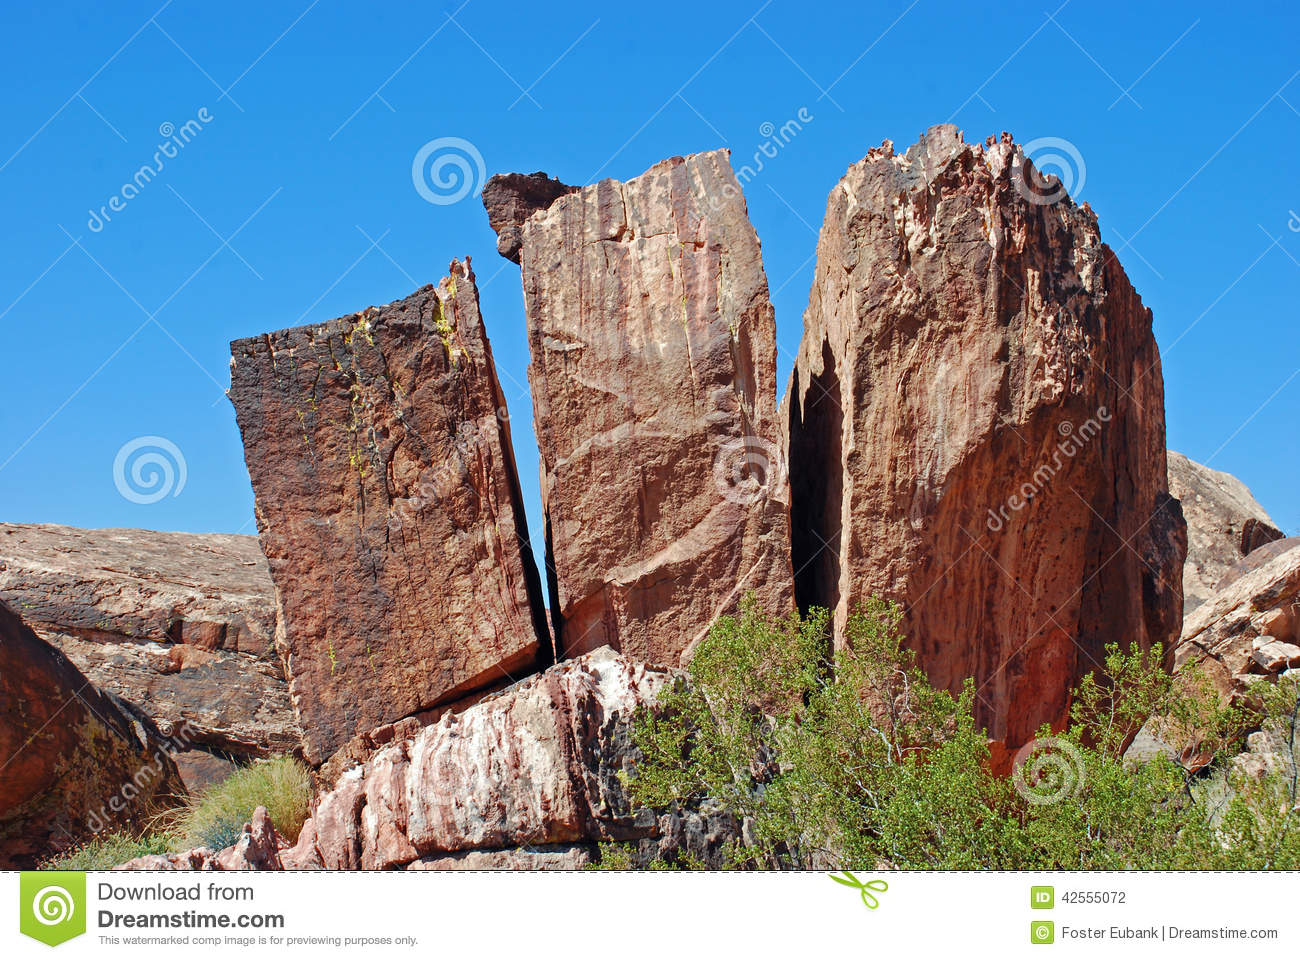 Split Rock Formation In Red Rock Canyon, Nevada. Stock Photo.